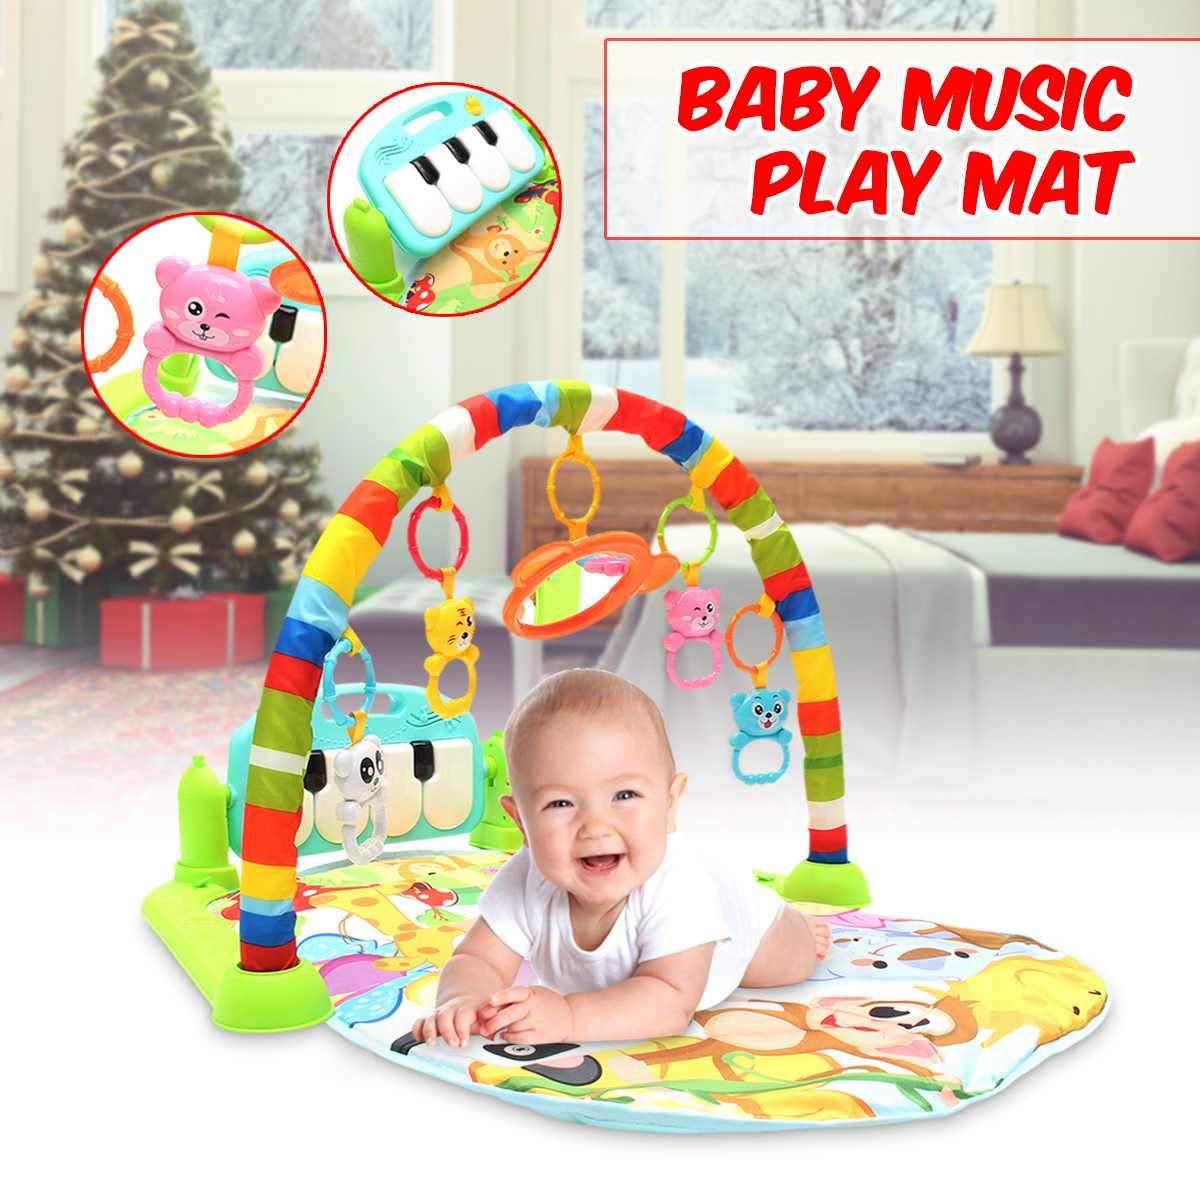 Baby Soft Playmat Foam Kids Piano Musical Sleep Lullaby Activity Fitness Gym Mat Baby Sleeping Safety Blanket Educational Toys